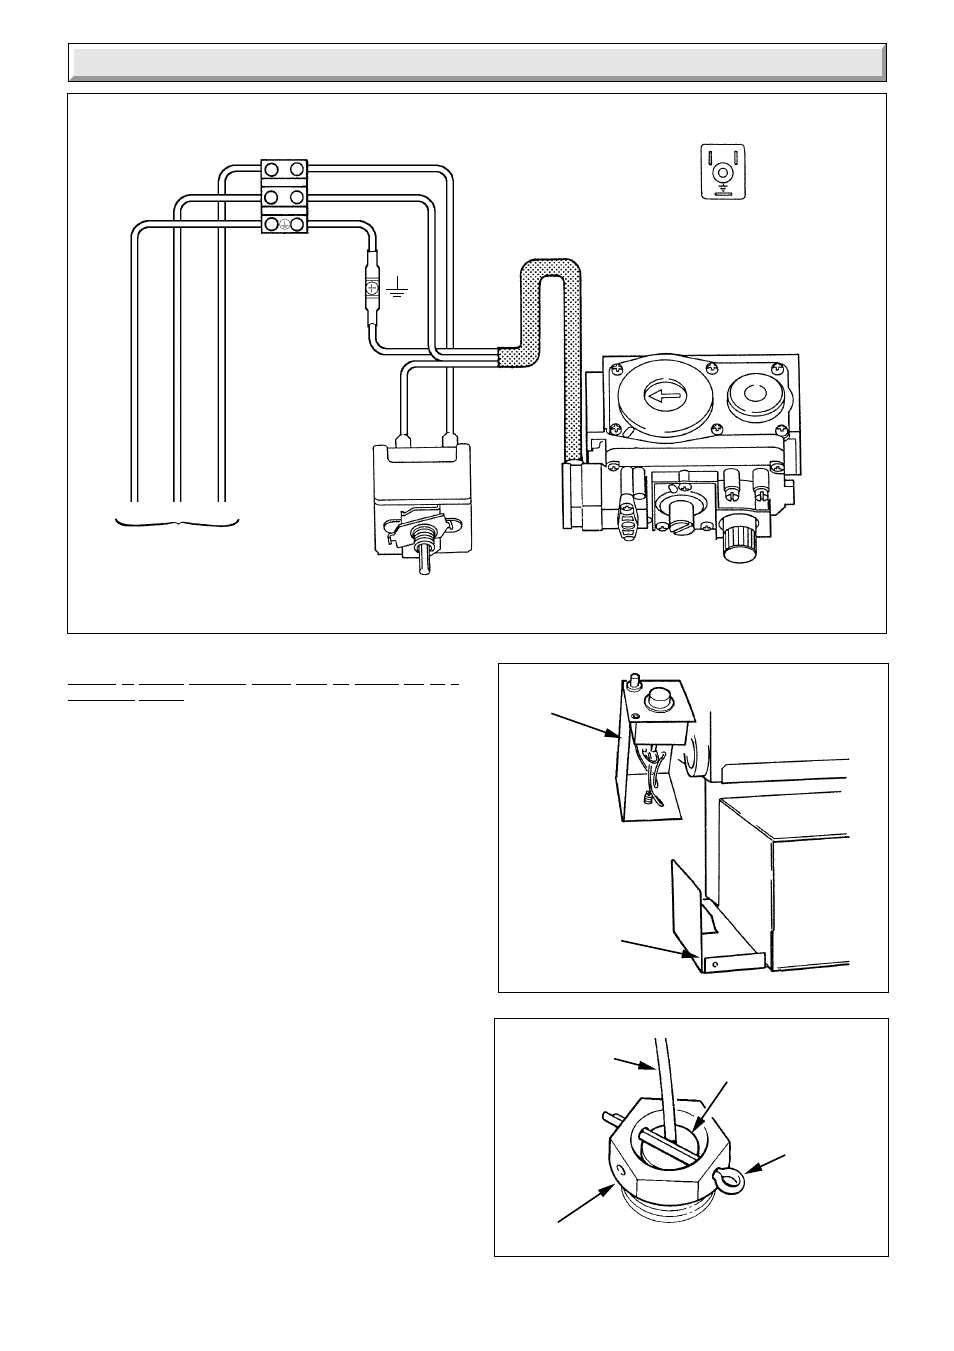 medium resolution of 5 electrical wiring glow worm 56 2 back boiler user manual page 11 24